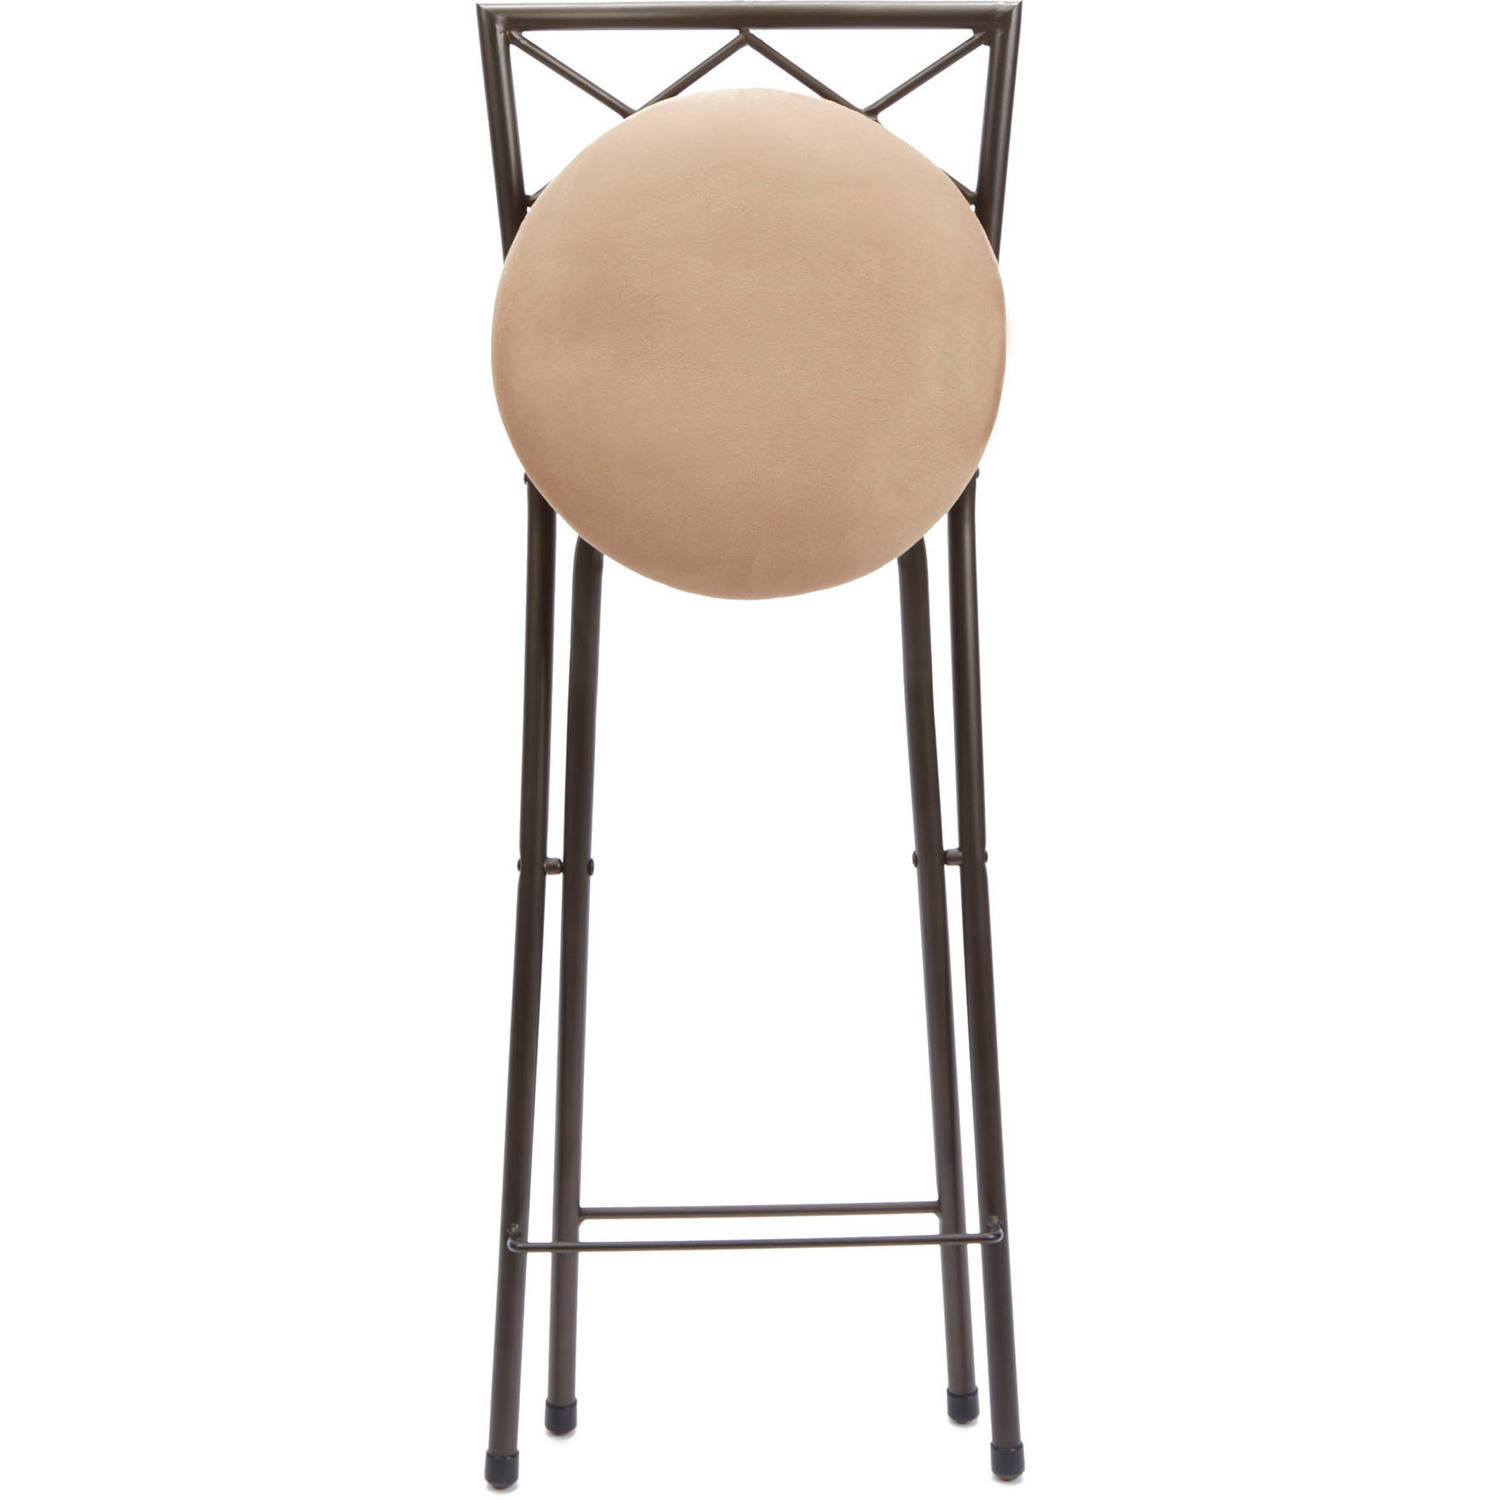 folding bar stool chairs best toddler chair and table set stools back 30 bronze beige microfiber